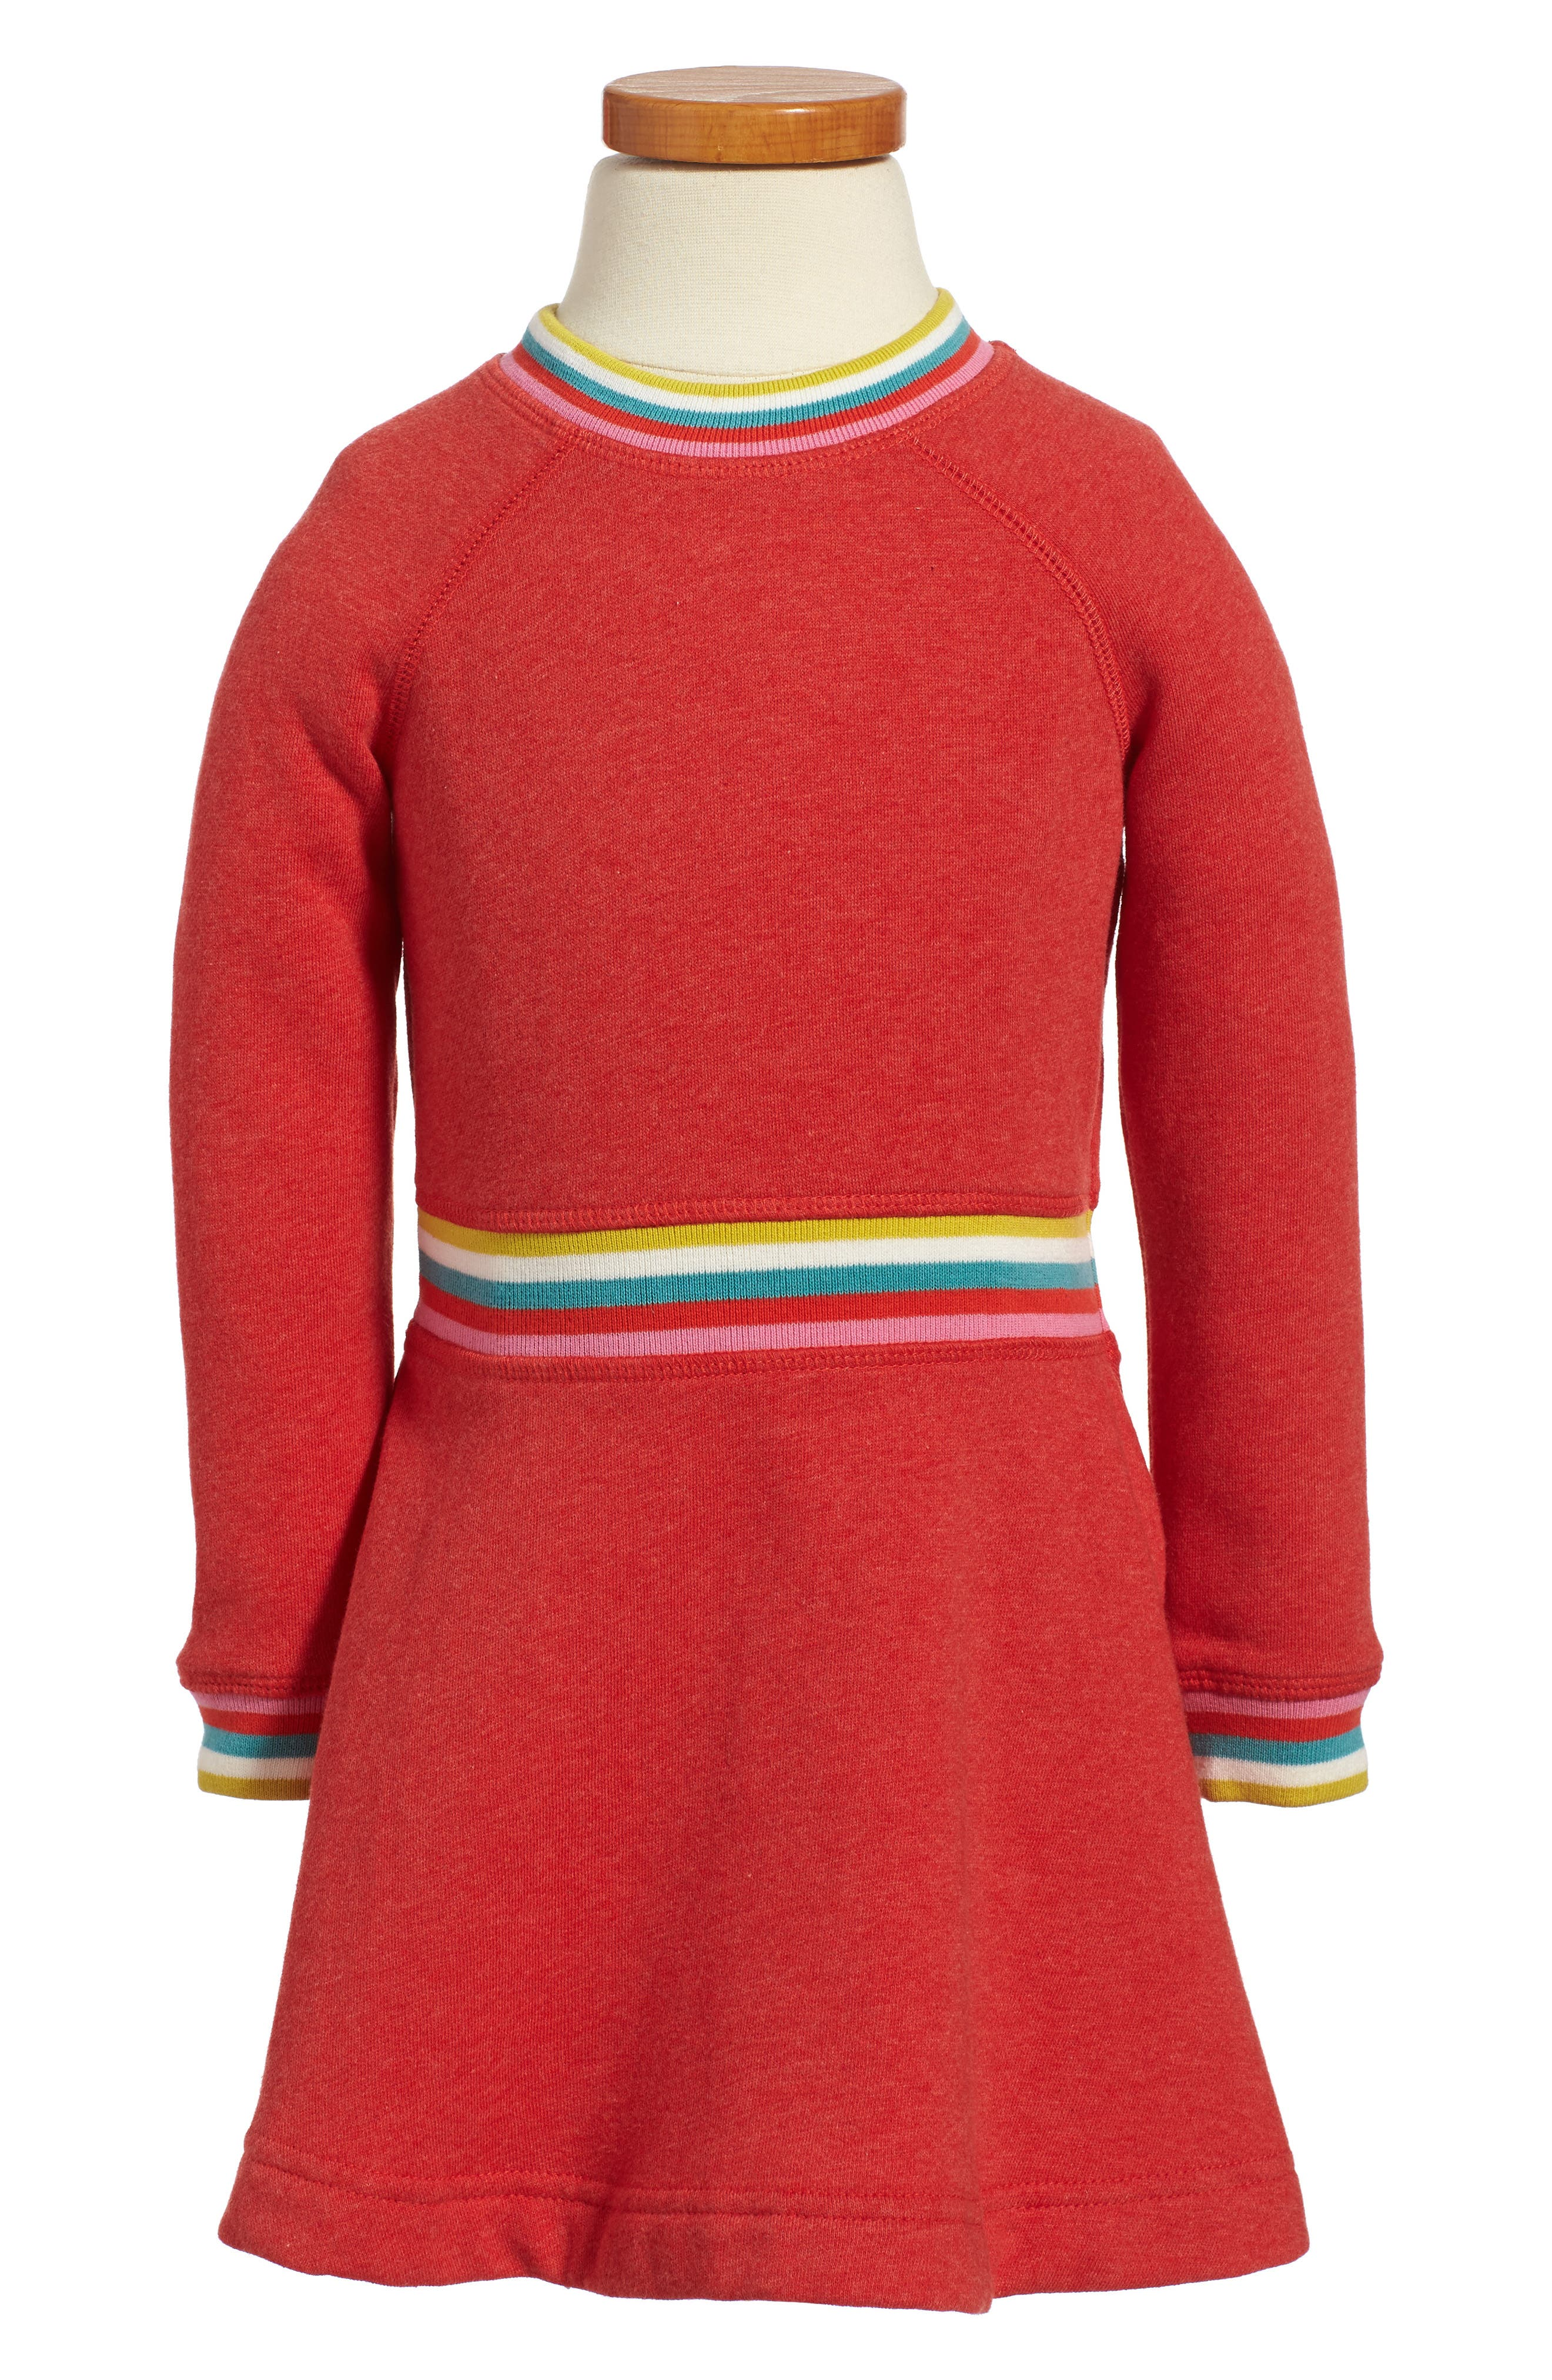 Main Image - Mini Boden Cosy Sweatshirt Dress (Toddler Girls, Little Girls & Big Girls)